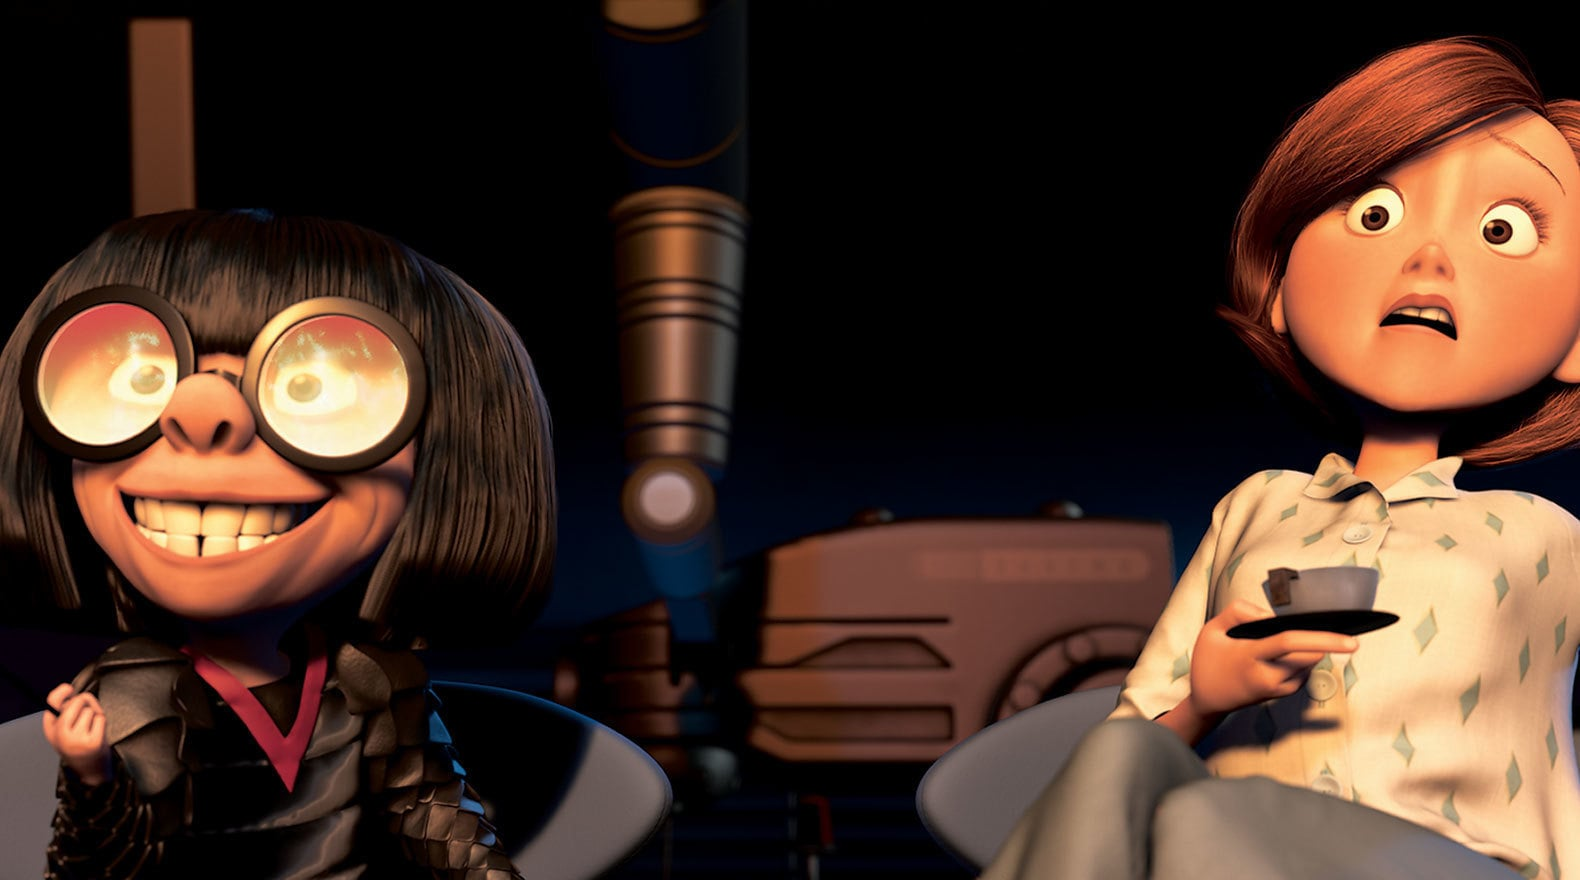 Edna has a spark of inspiration for a new super suit.